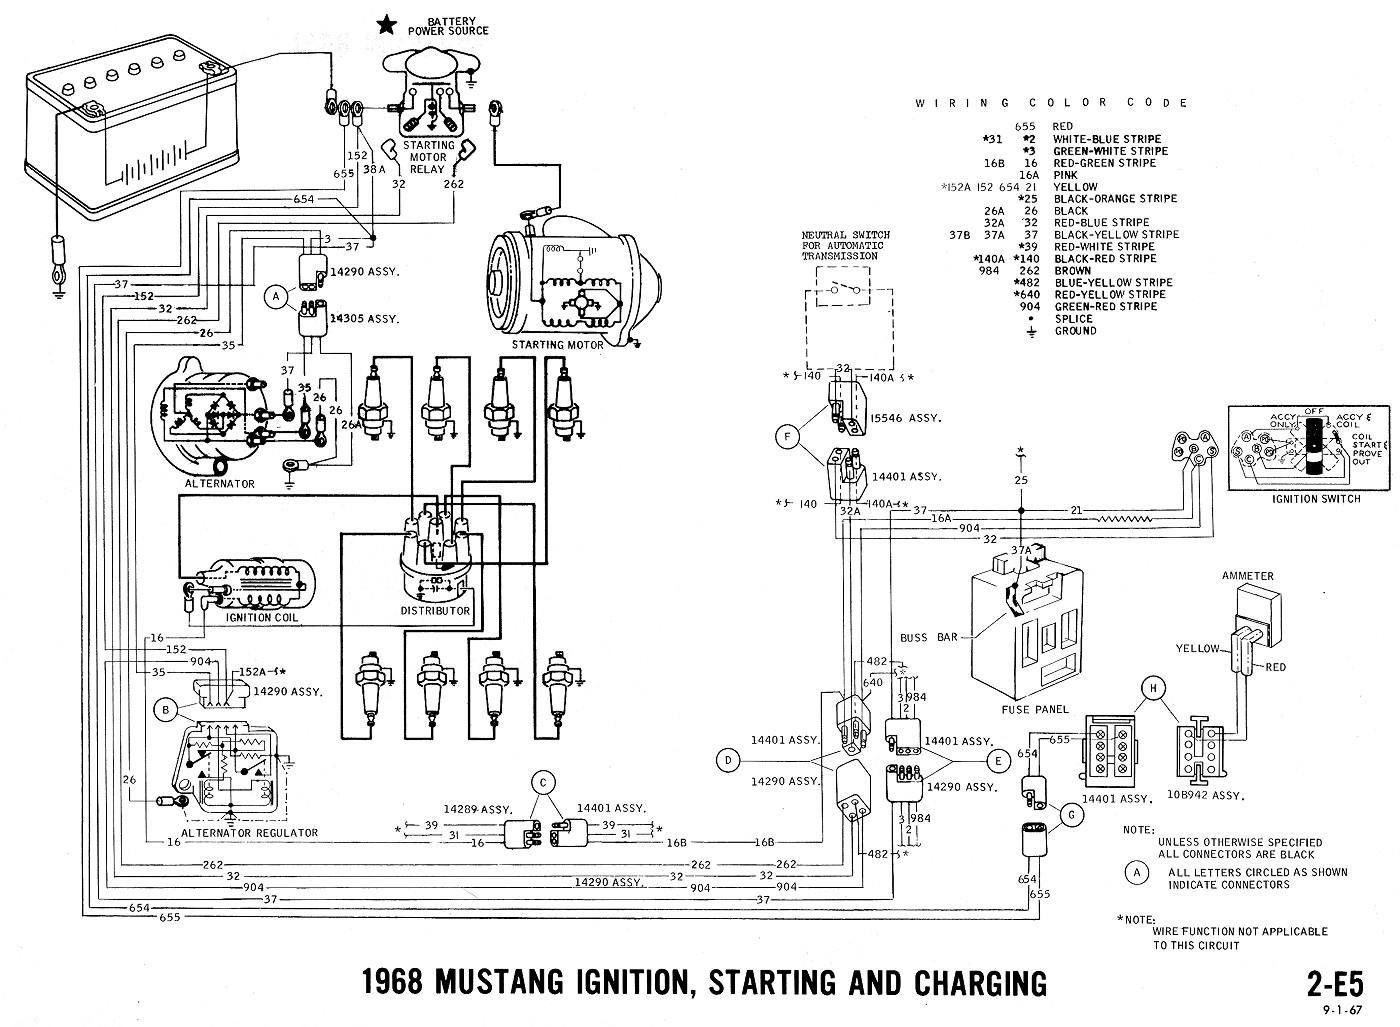 Ford F650 Wiring Diagram In 2020 New Holland Skid Steer Mustang Engine Diagram